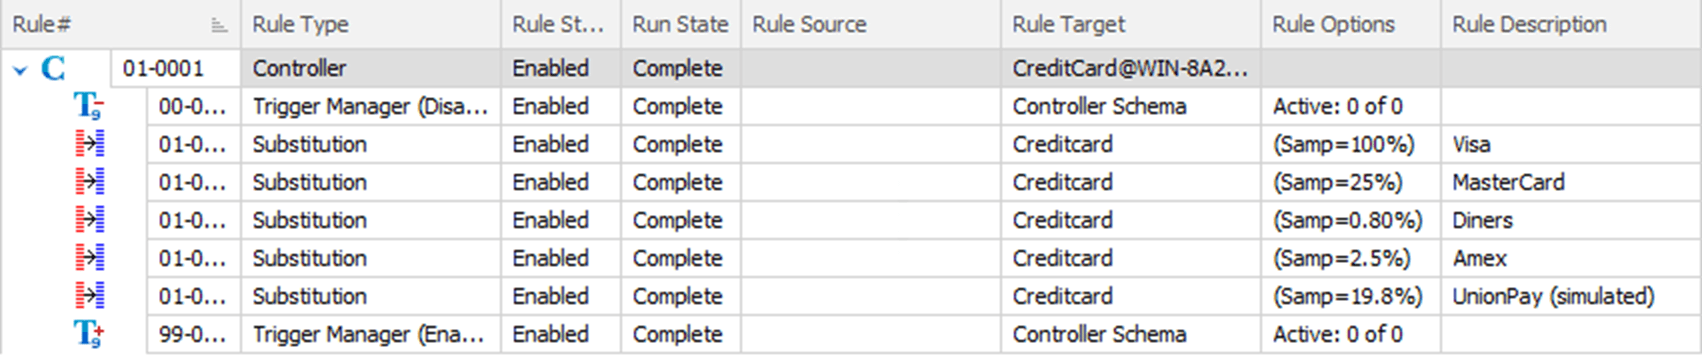 Data masking rule set in Redgate Data Masker for SQL Server